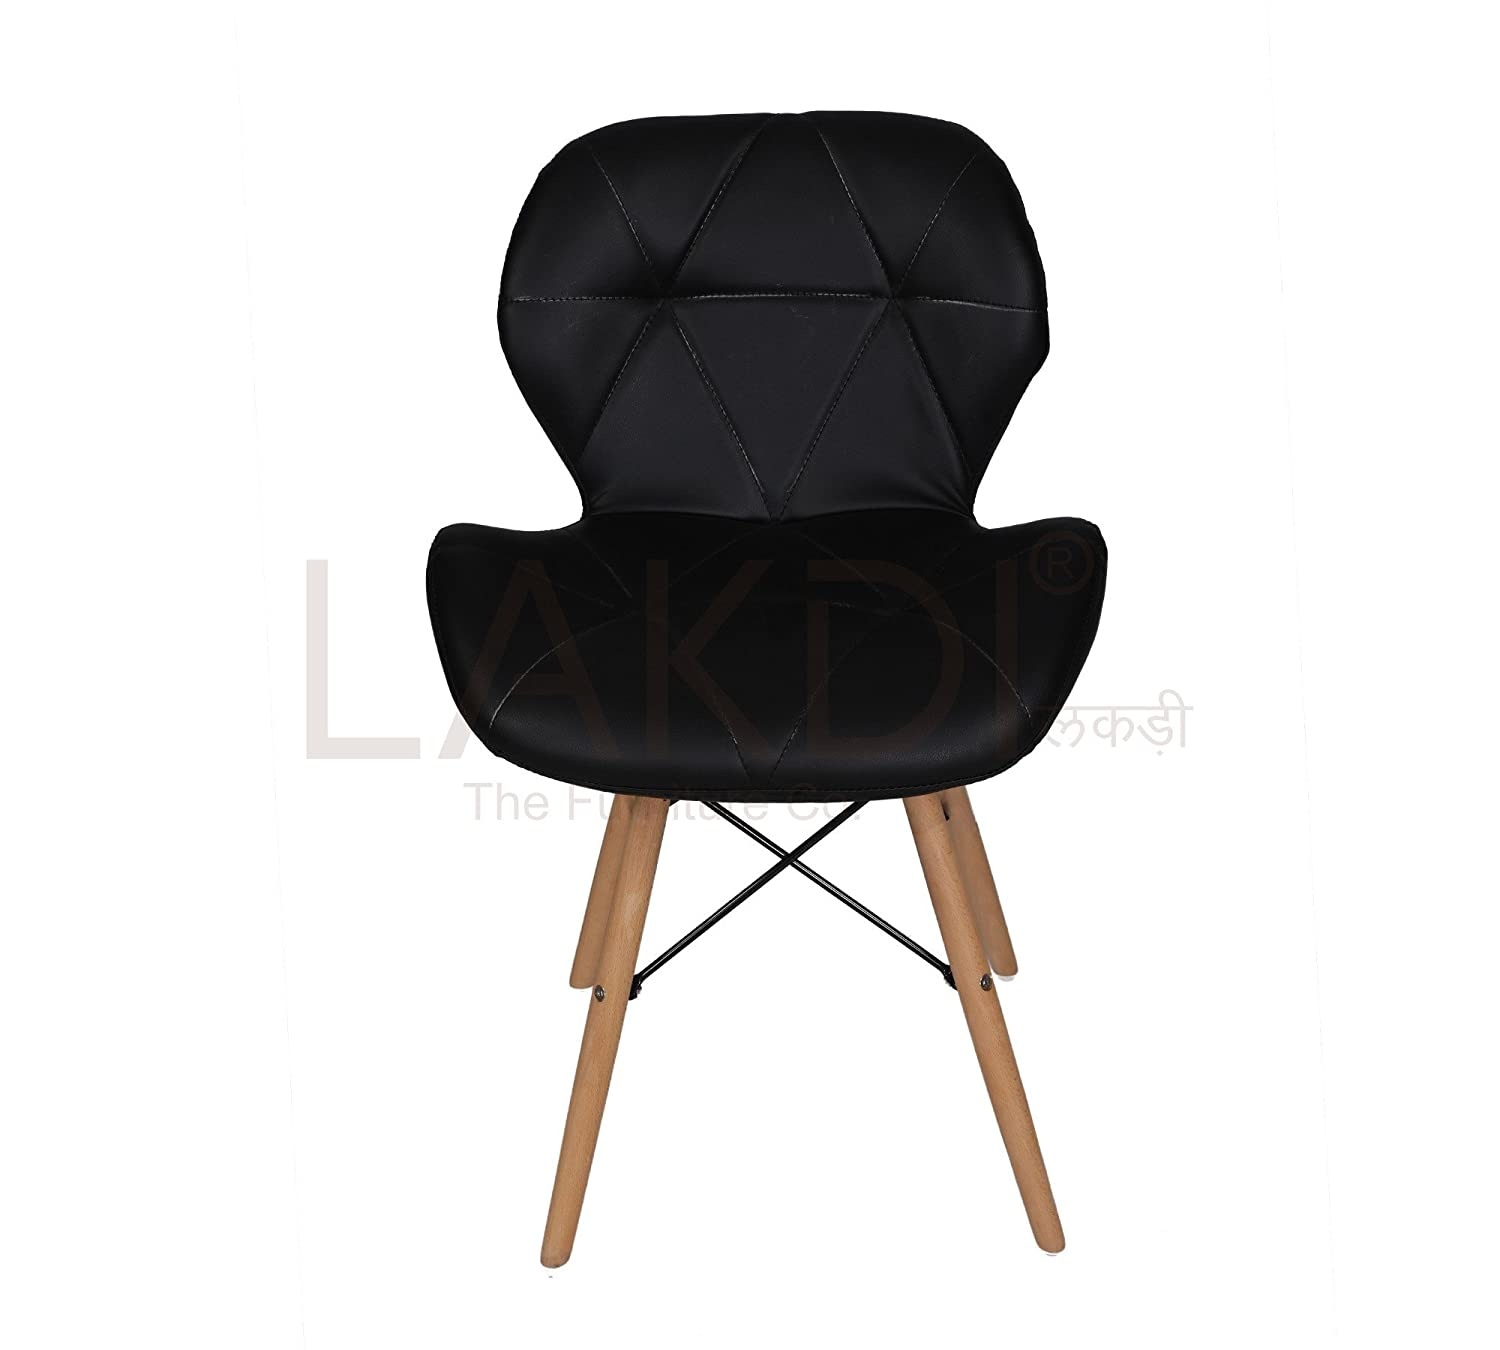 Lakdi Designer Cushioned Dining Chair And Living Room Chair,